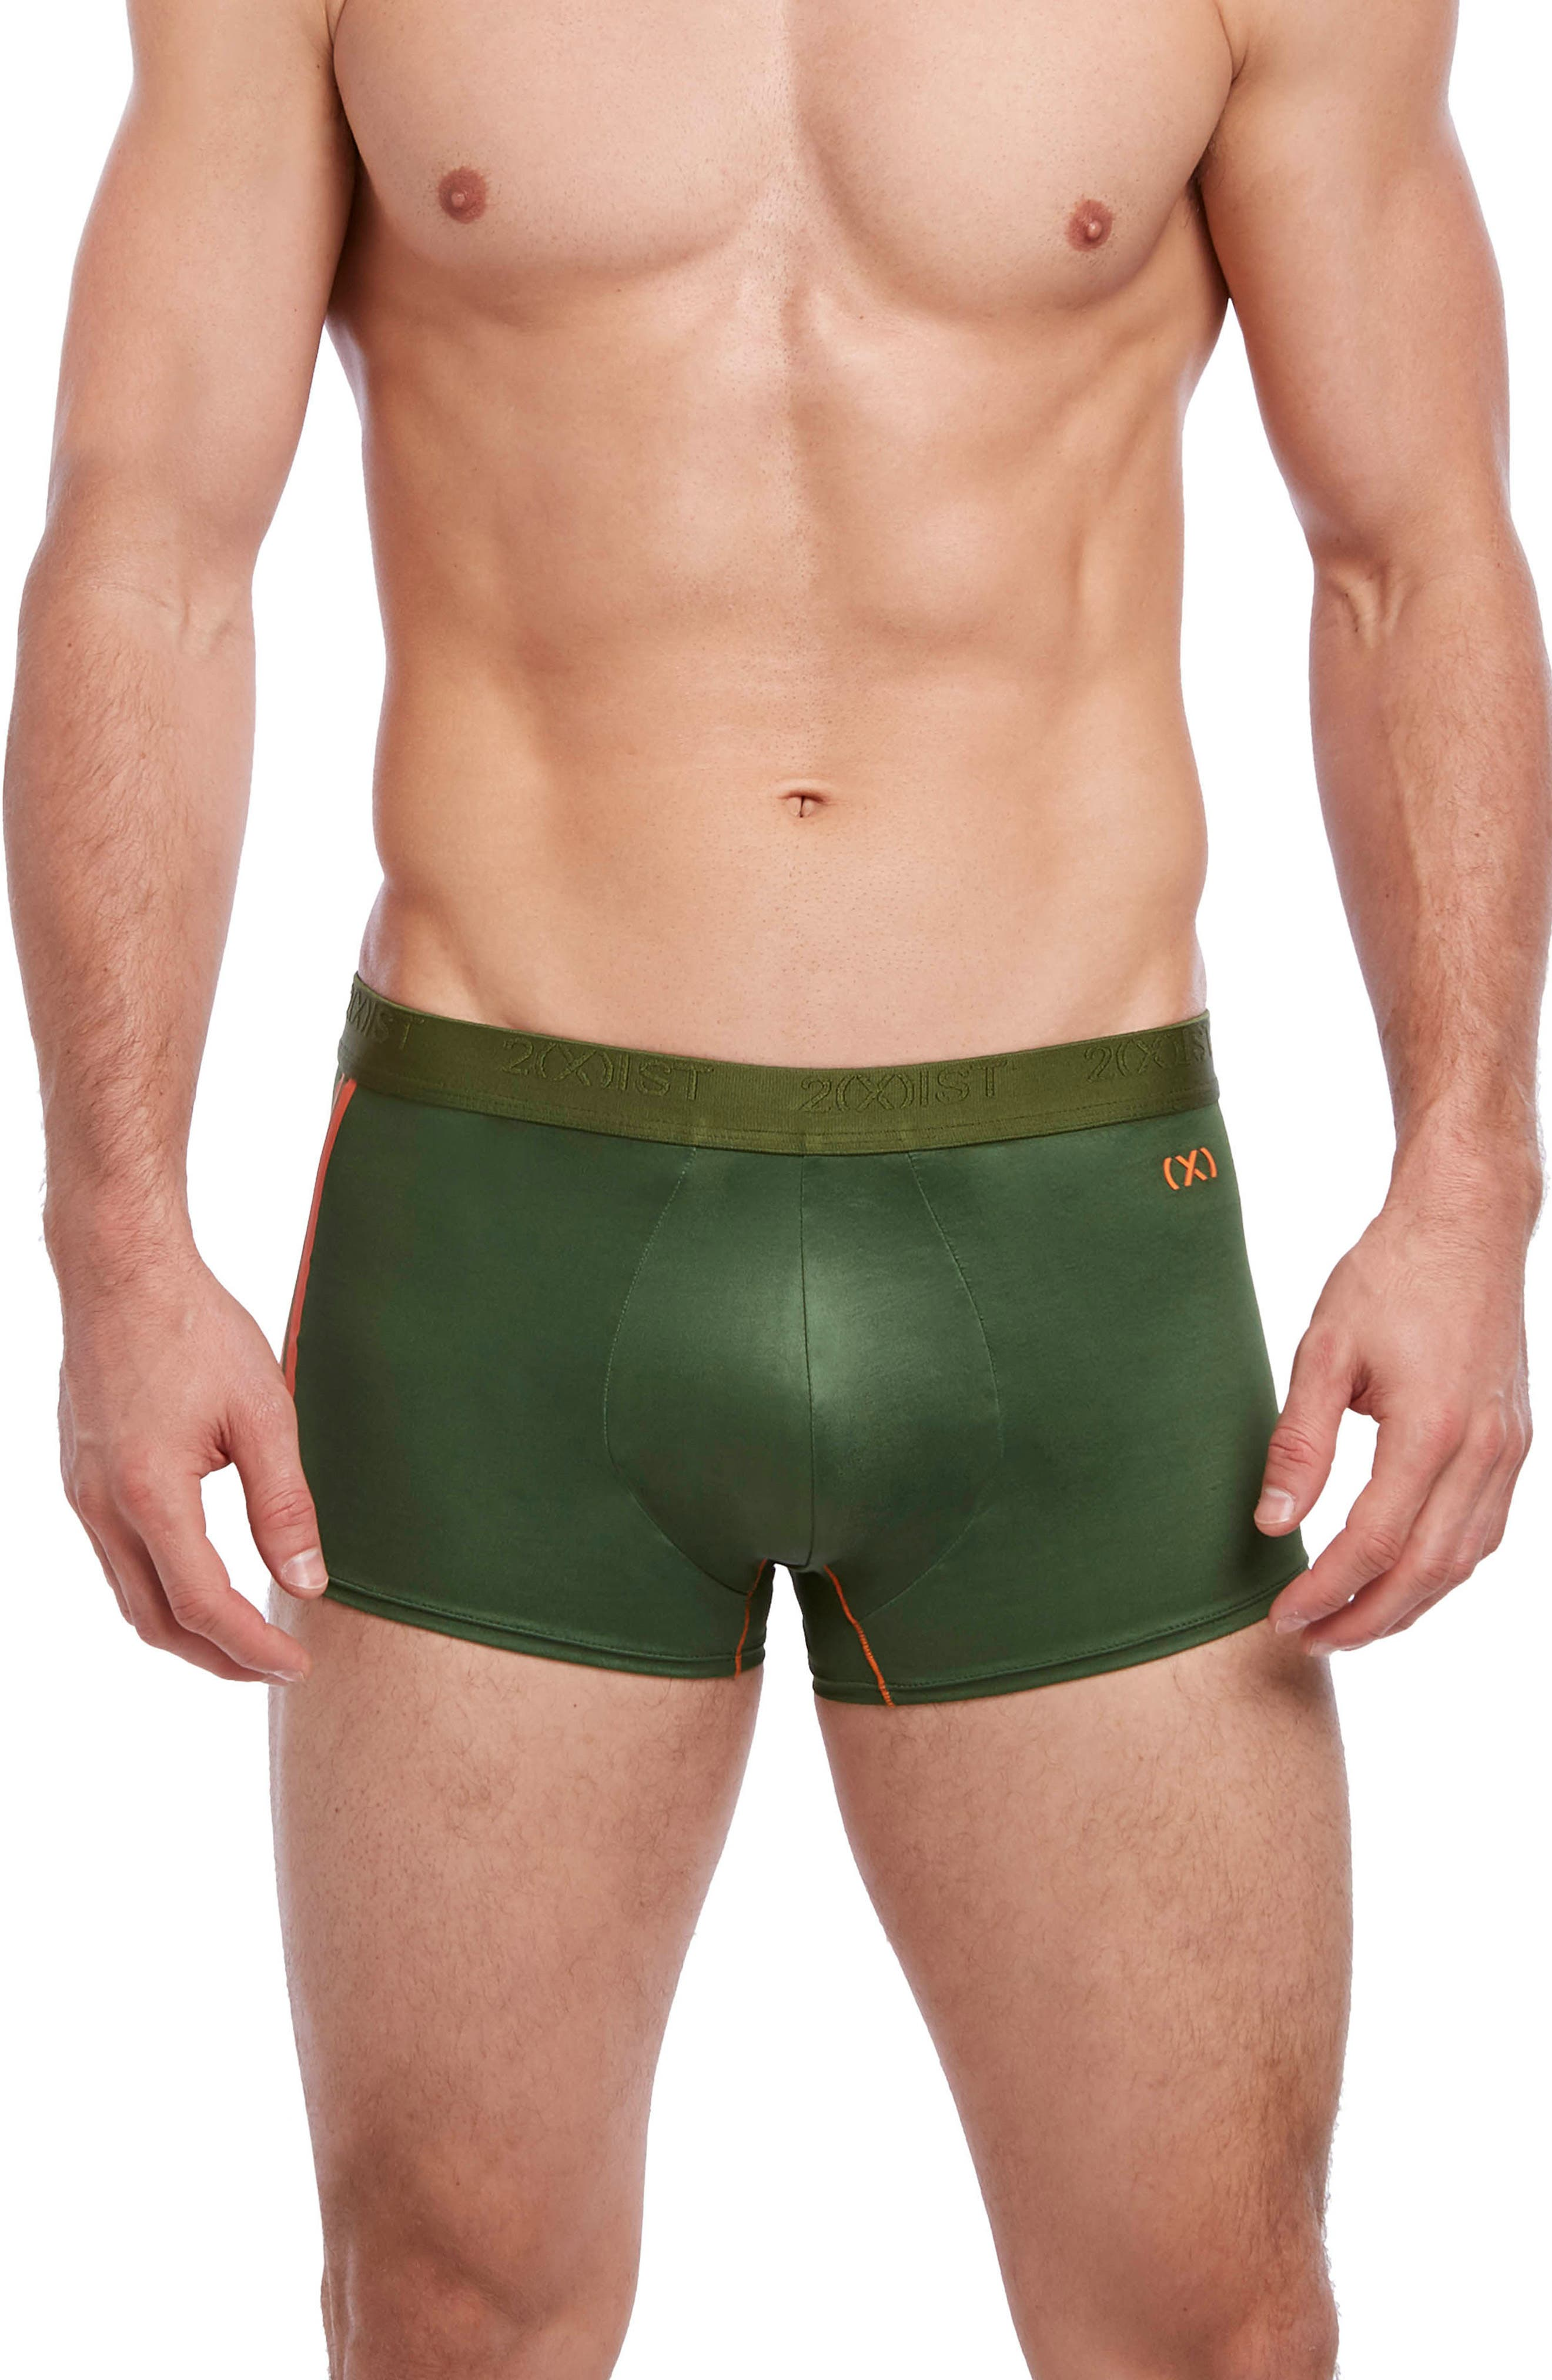 Military No-Show Trunks,                             Main thumbnail 1, color,                             Chive/ Golden Poppy